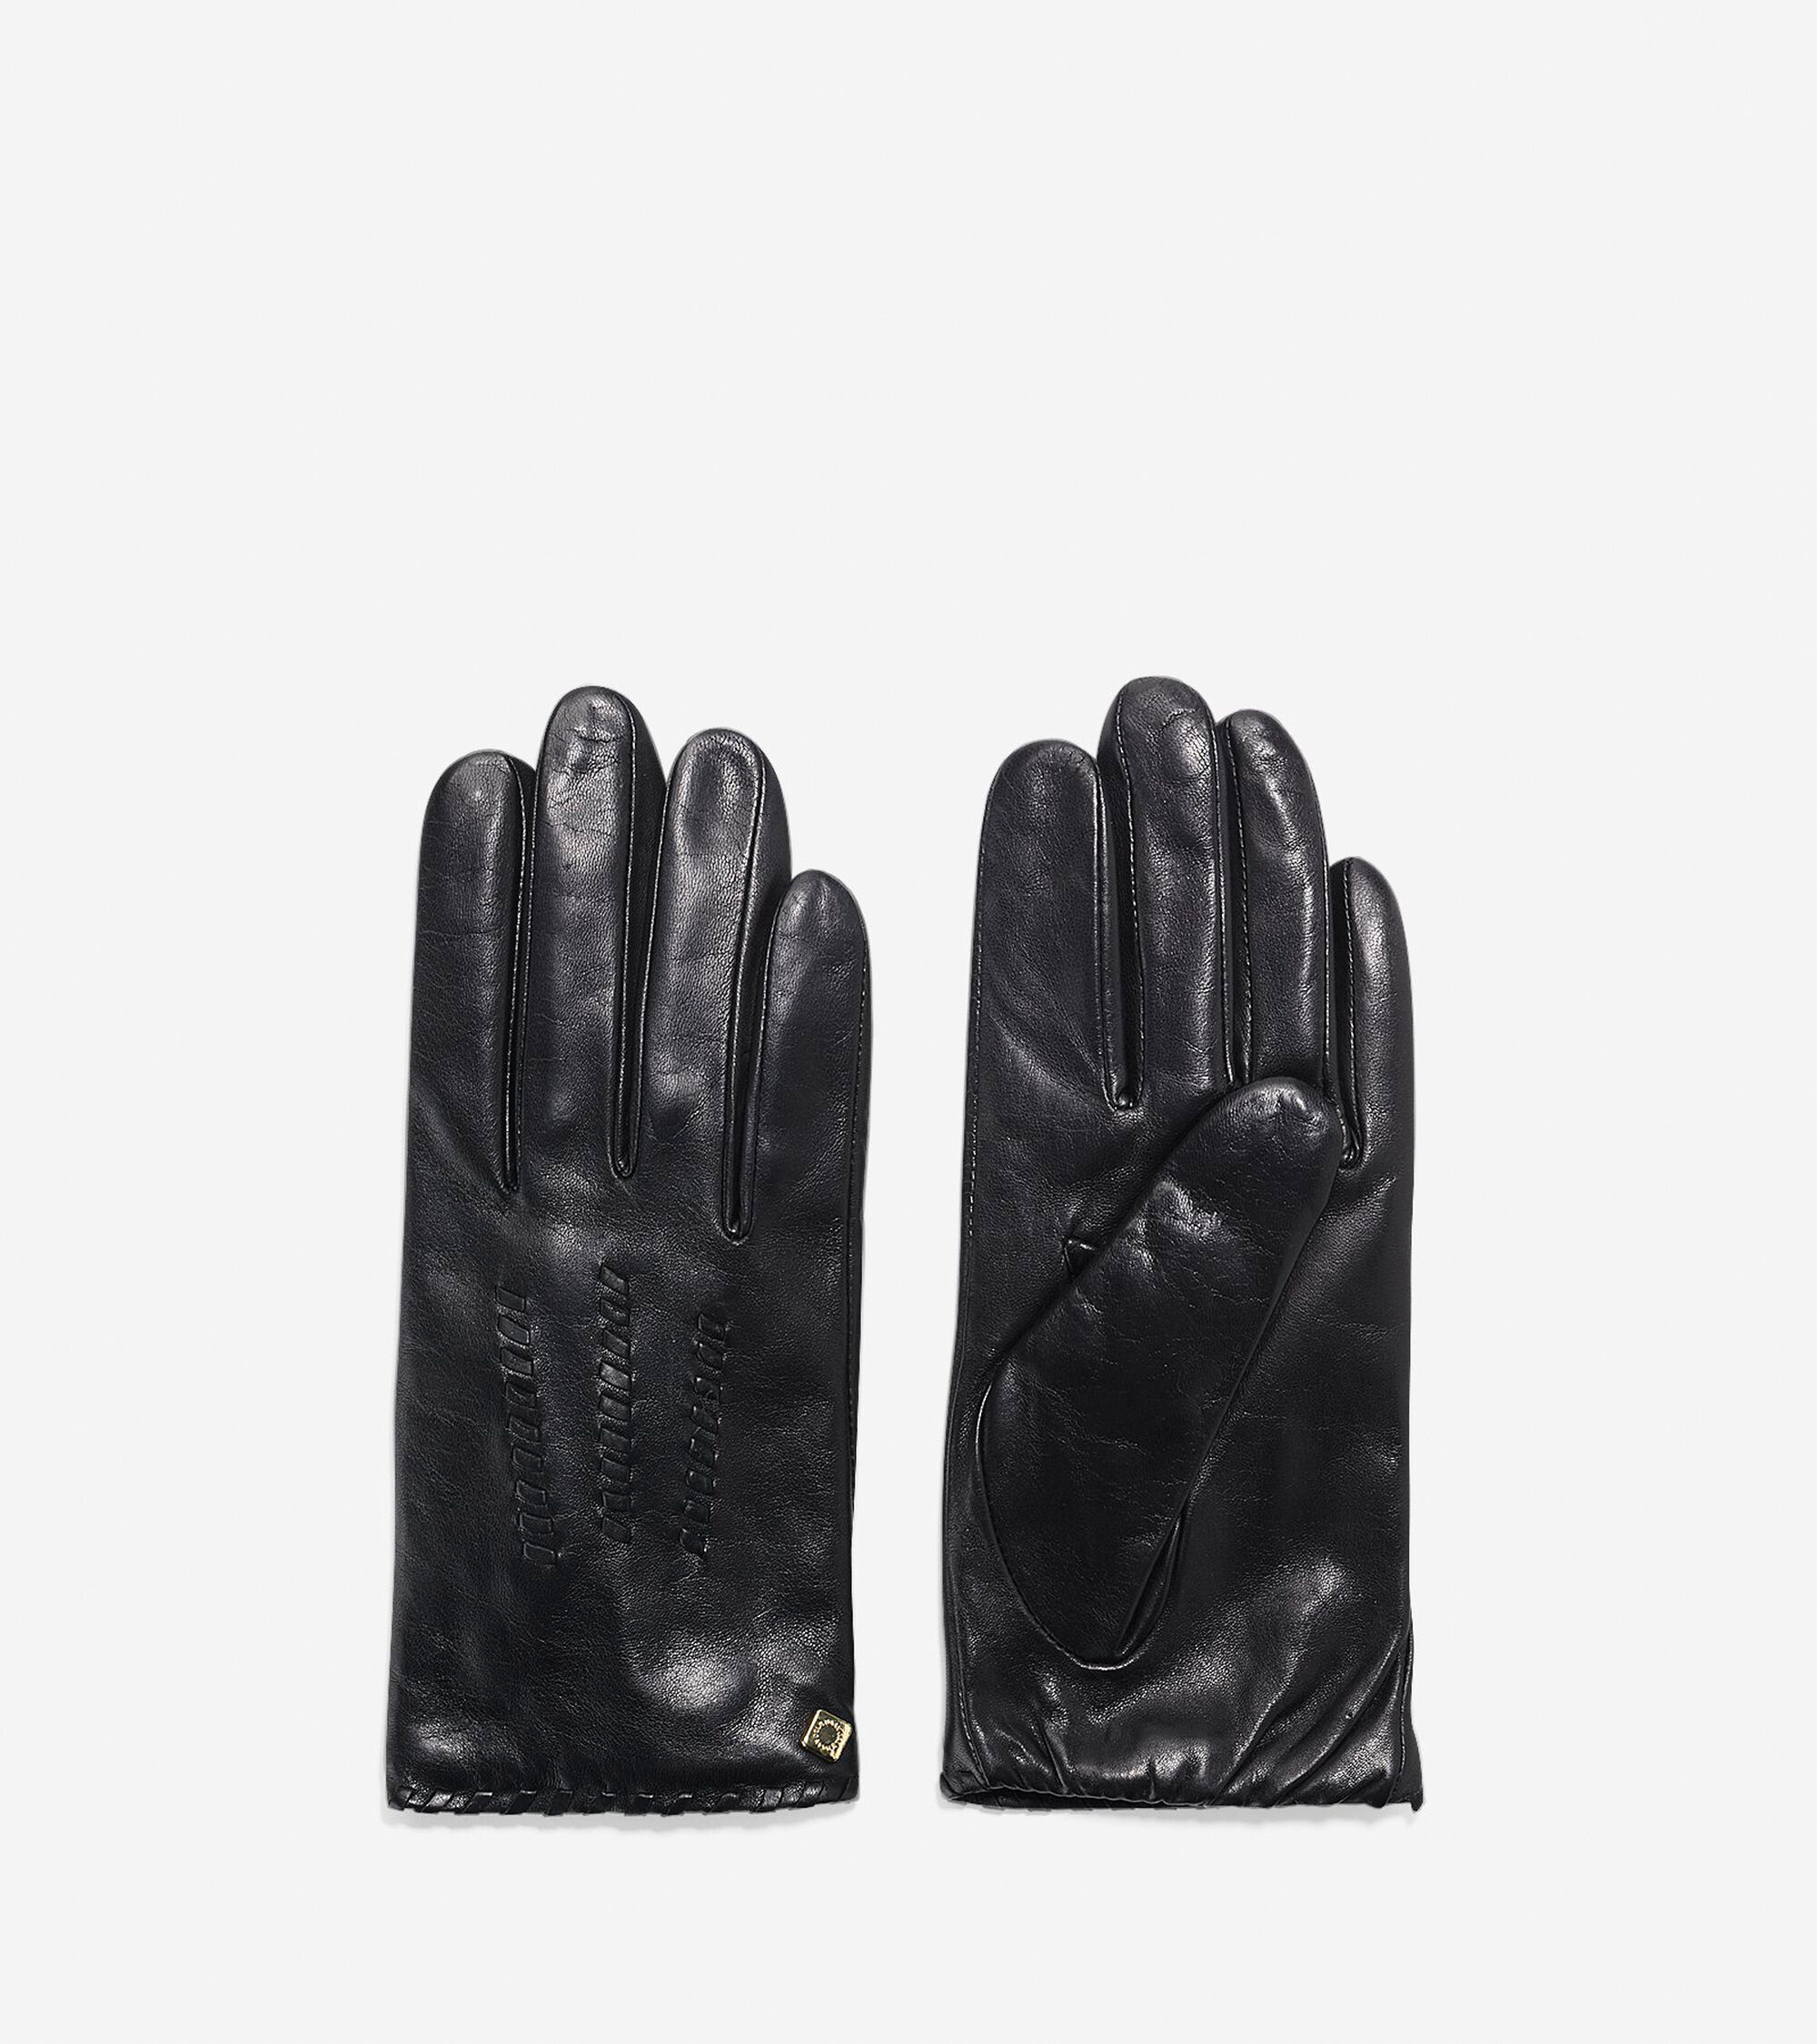 Cole haan black leather gloves - Lambskin Gloves Lambskin Gloves Colehaan